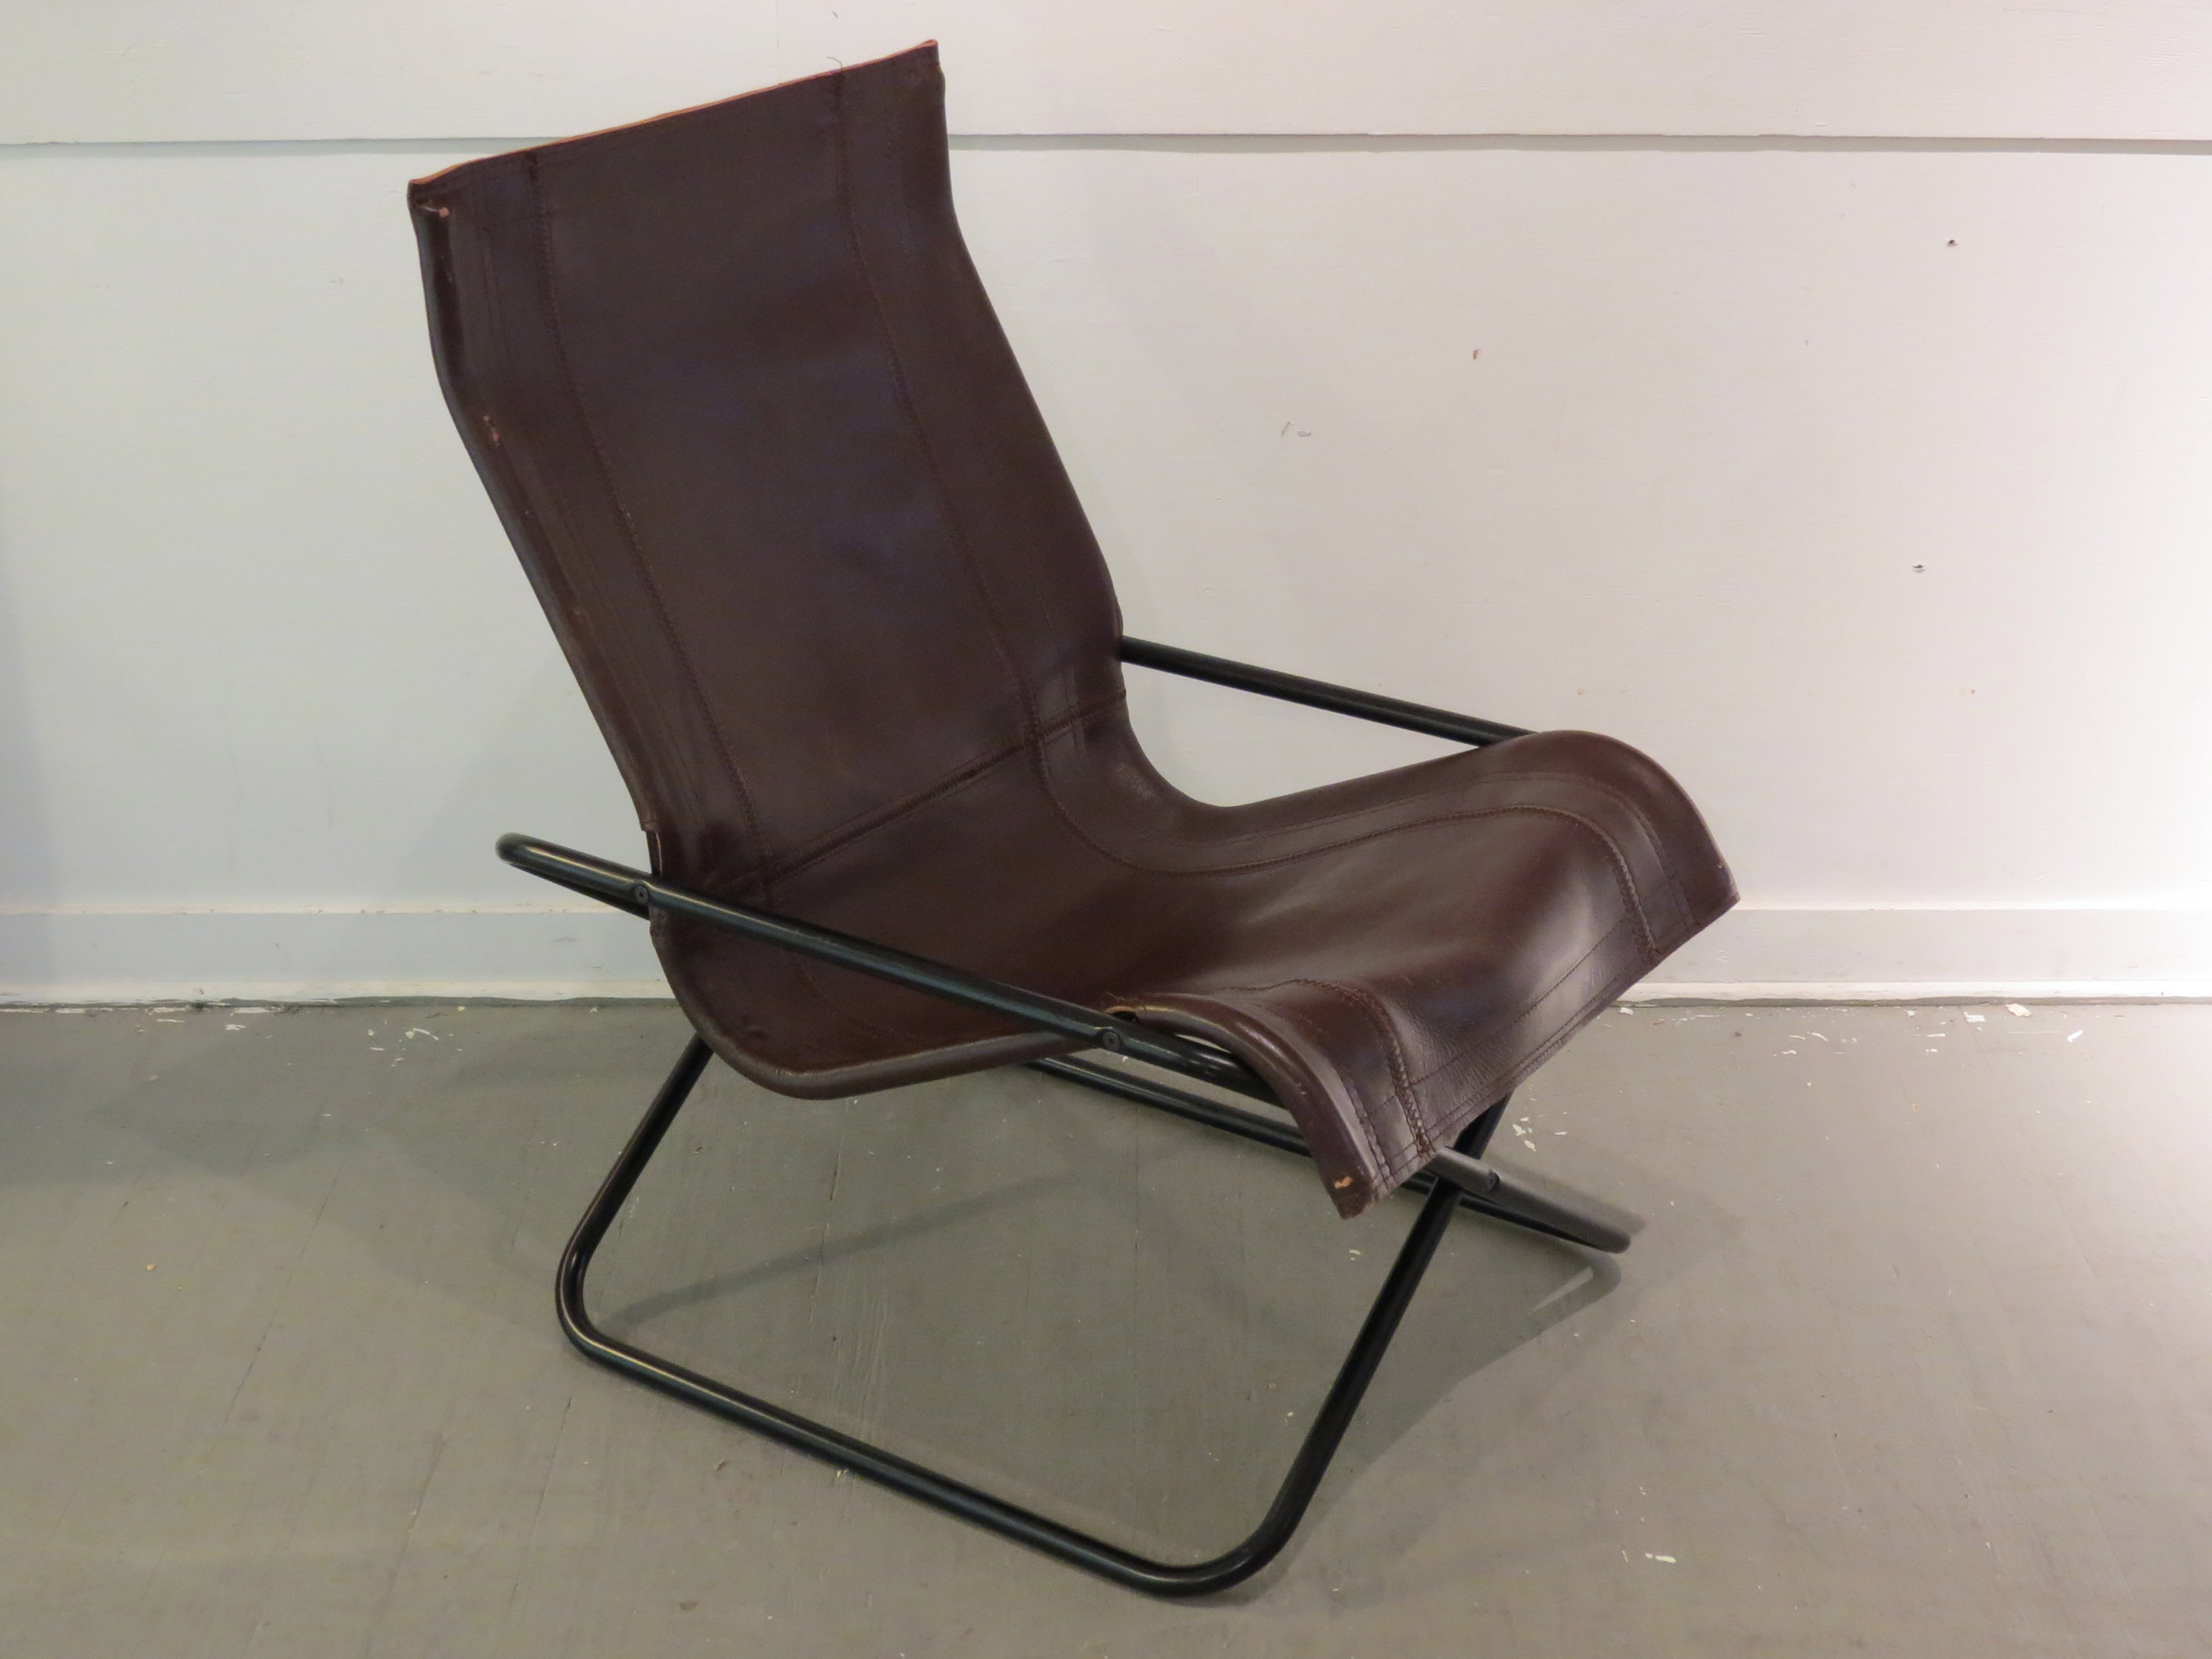 vintage mcm uchida leather sling chair image 2 of 11